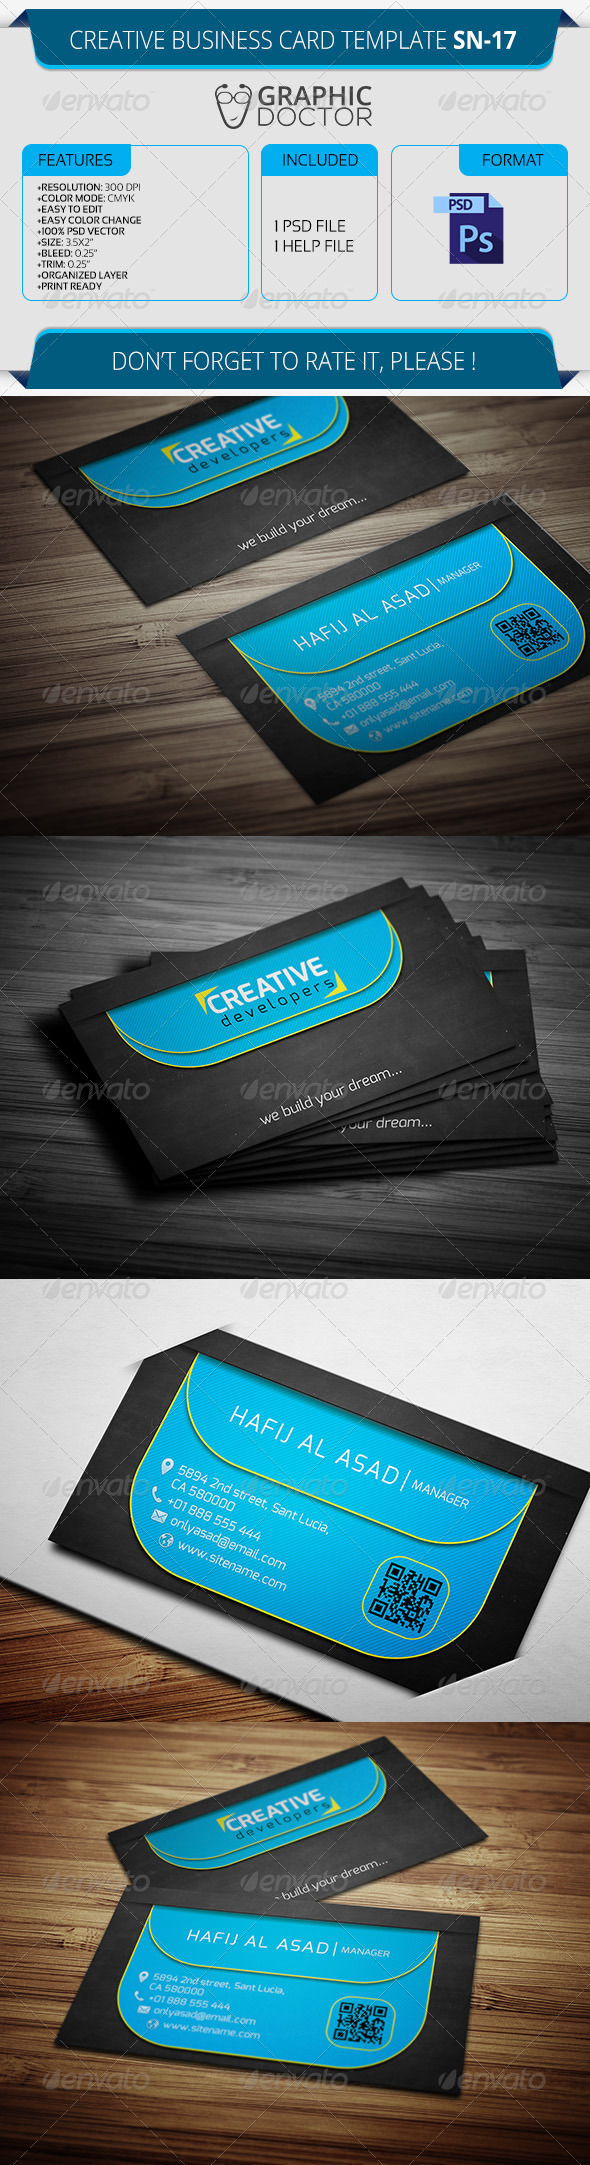 Creative Business Card Template SN-17 - Creative Business Cards